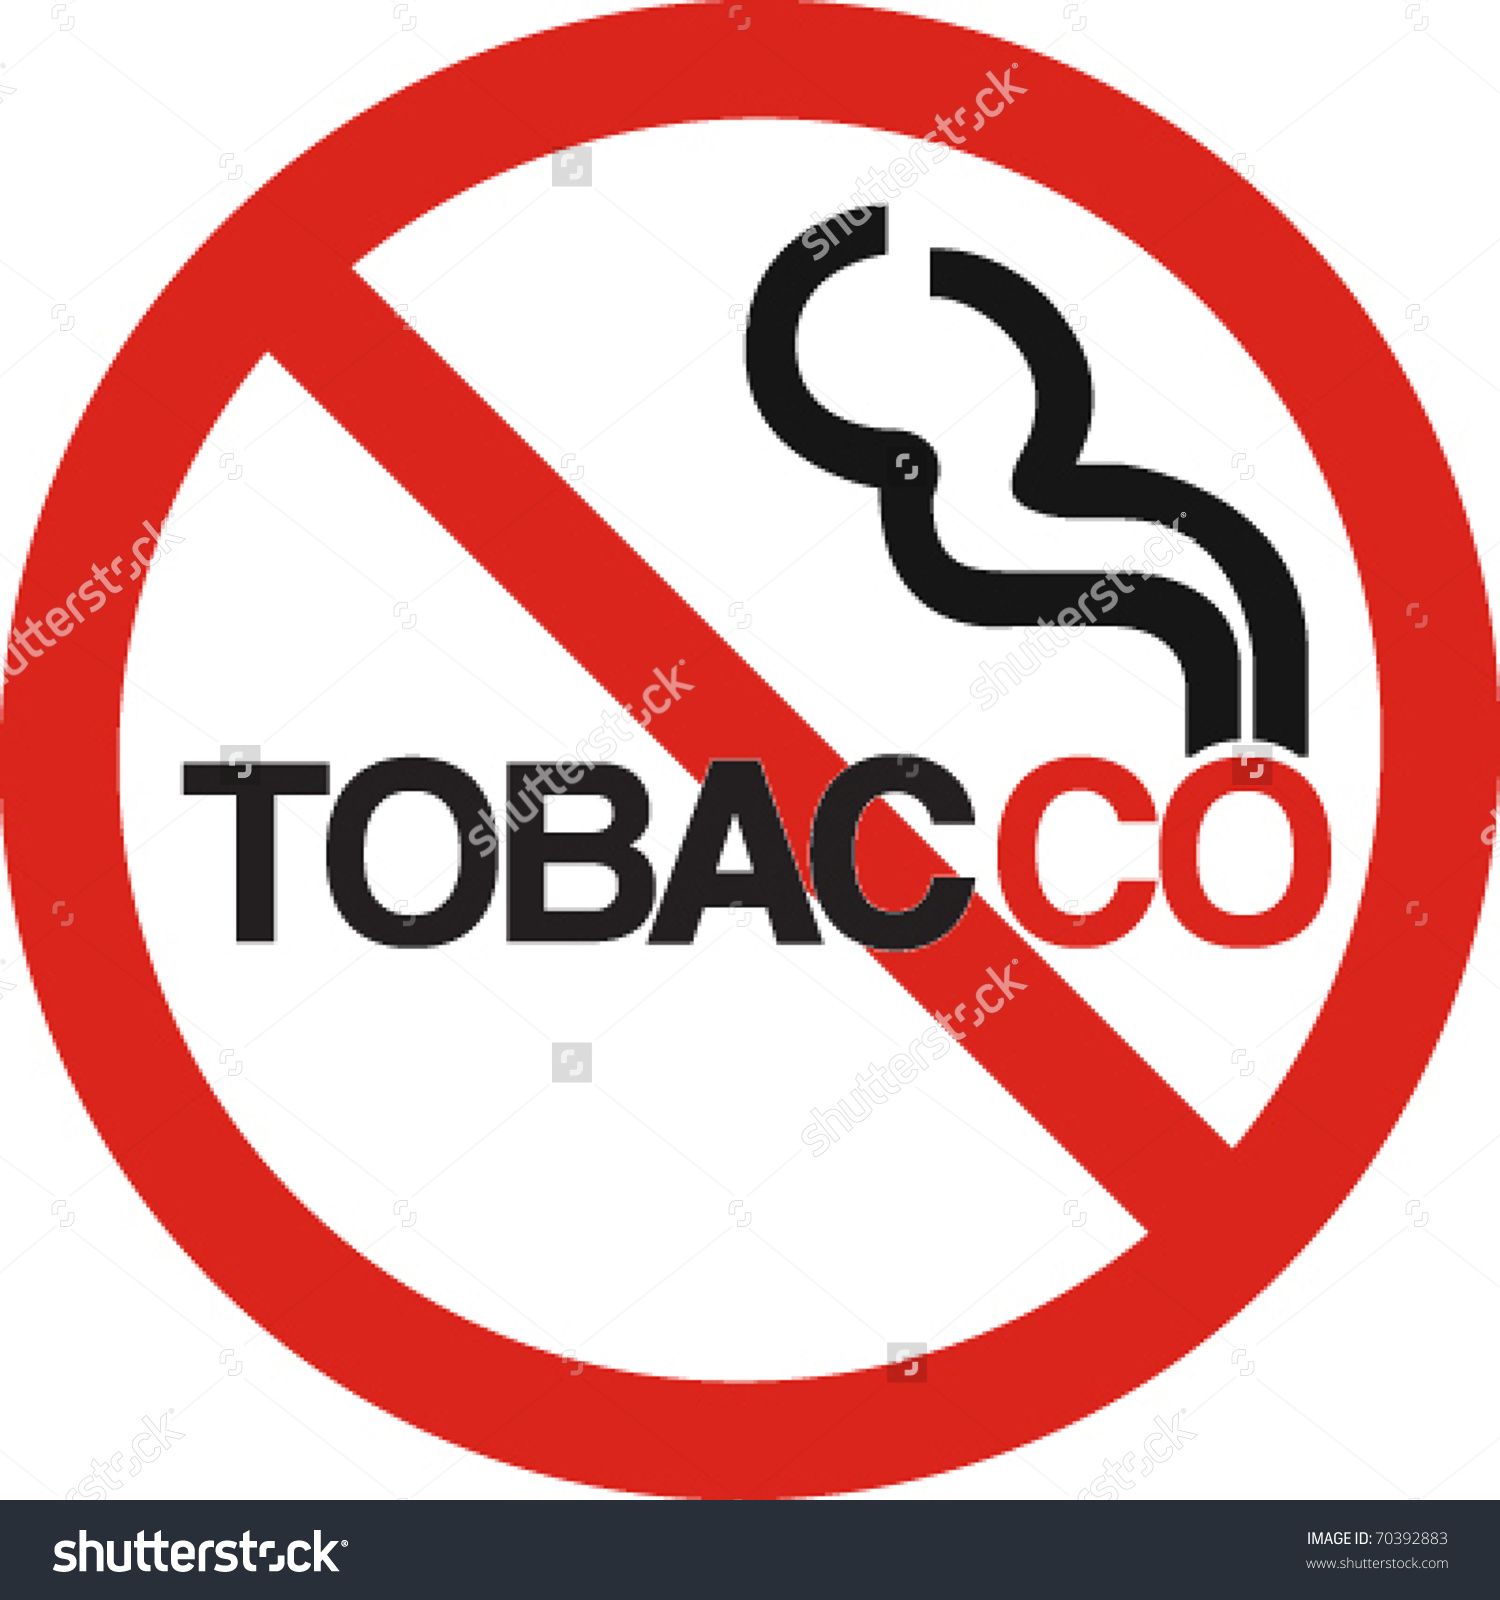 No tobacco clipart.